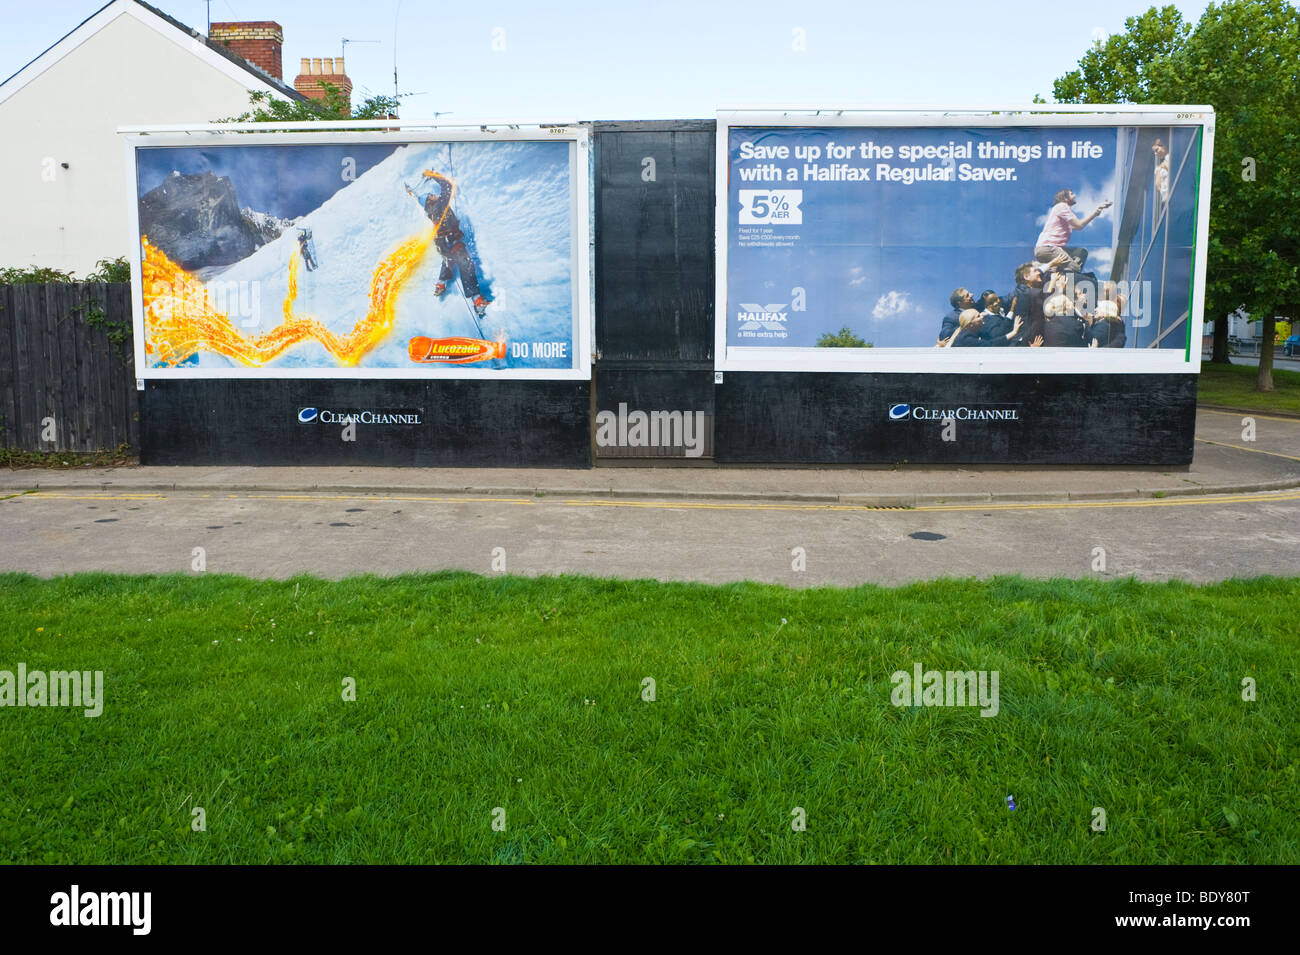 ClearChannel billboards for Lucozade and Halifax Bank in UK - Stock Image